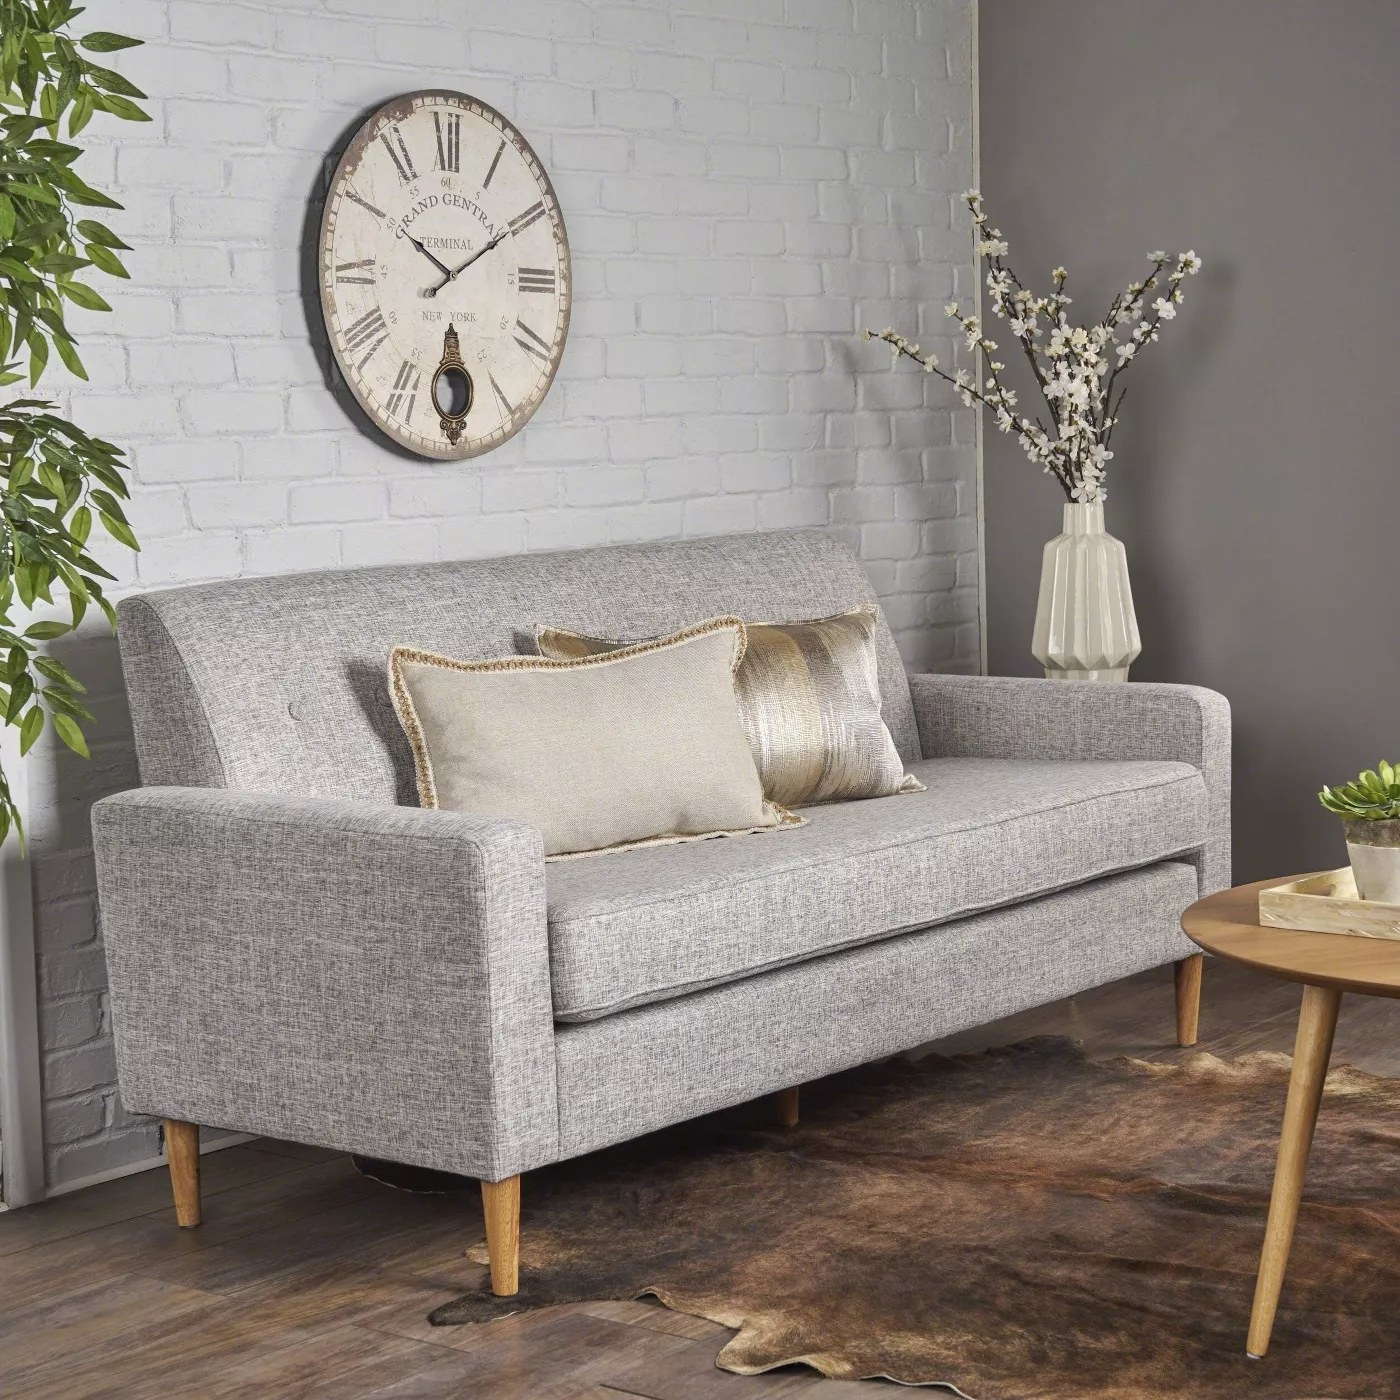 The sofa in light gray tweed